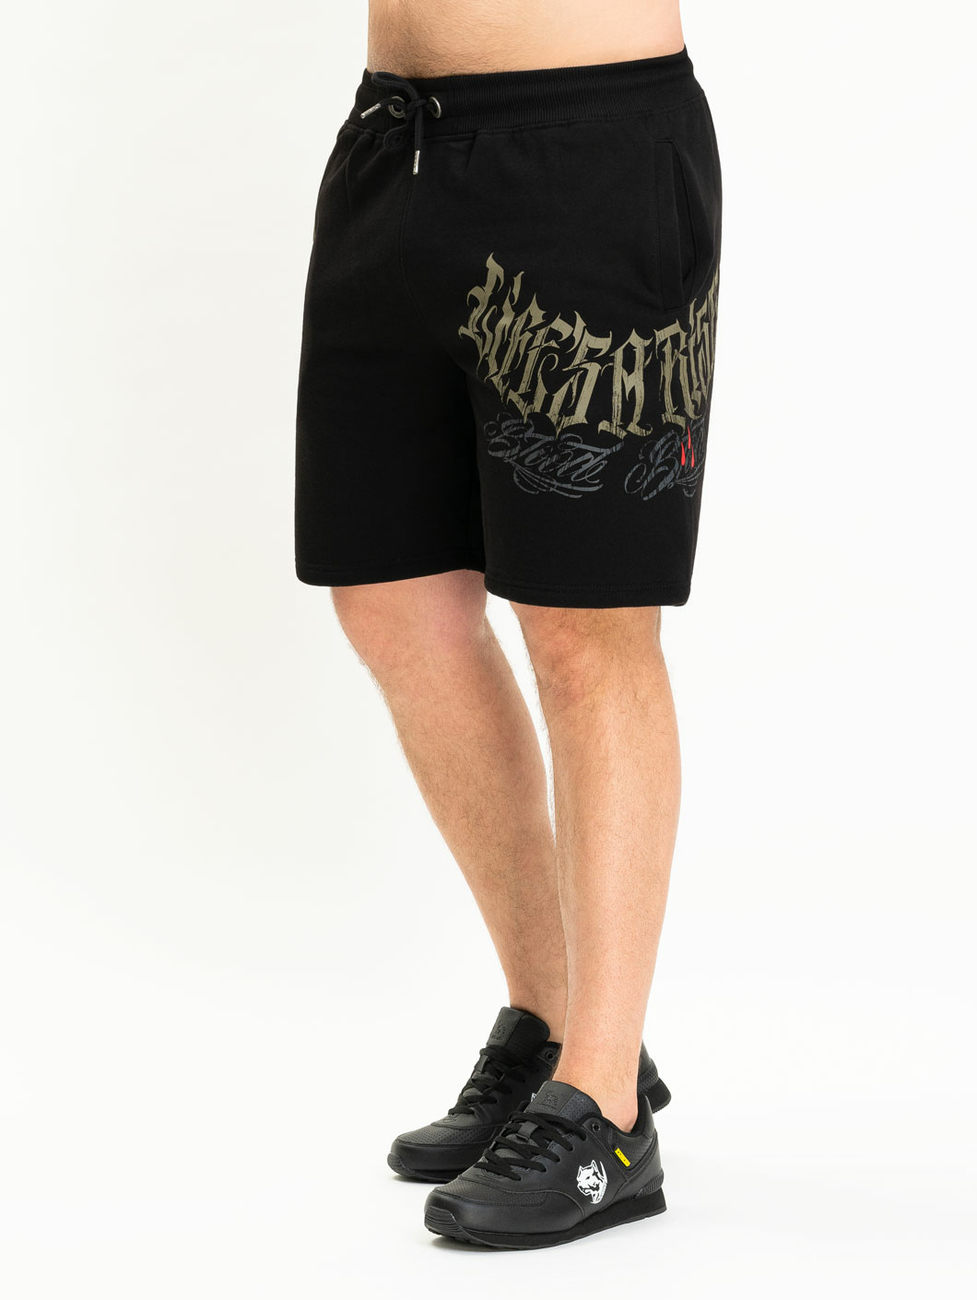 Blood In Blood Out Miembros Sweatshorts S